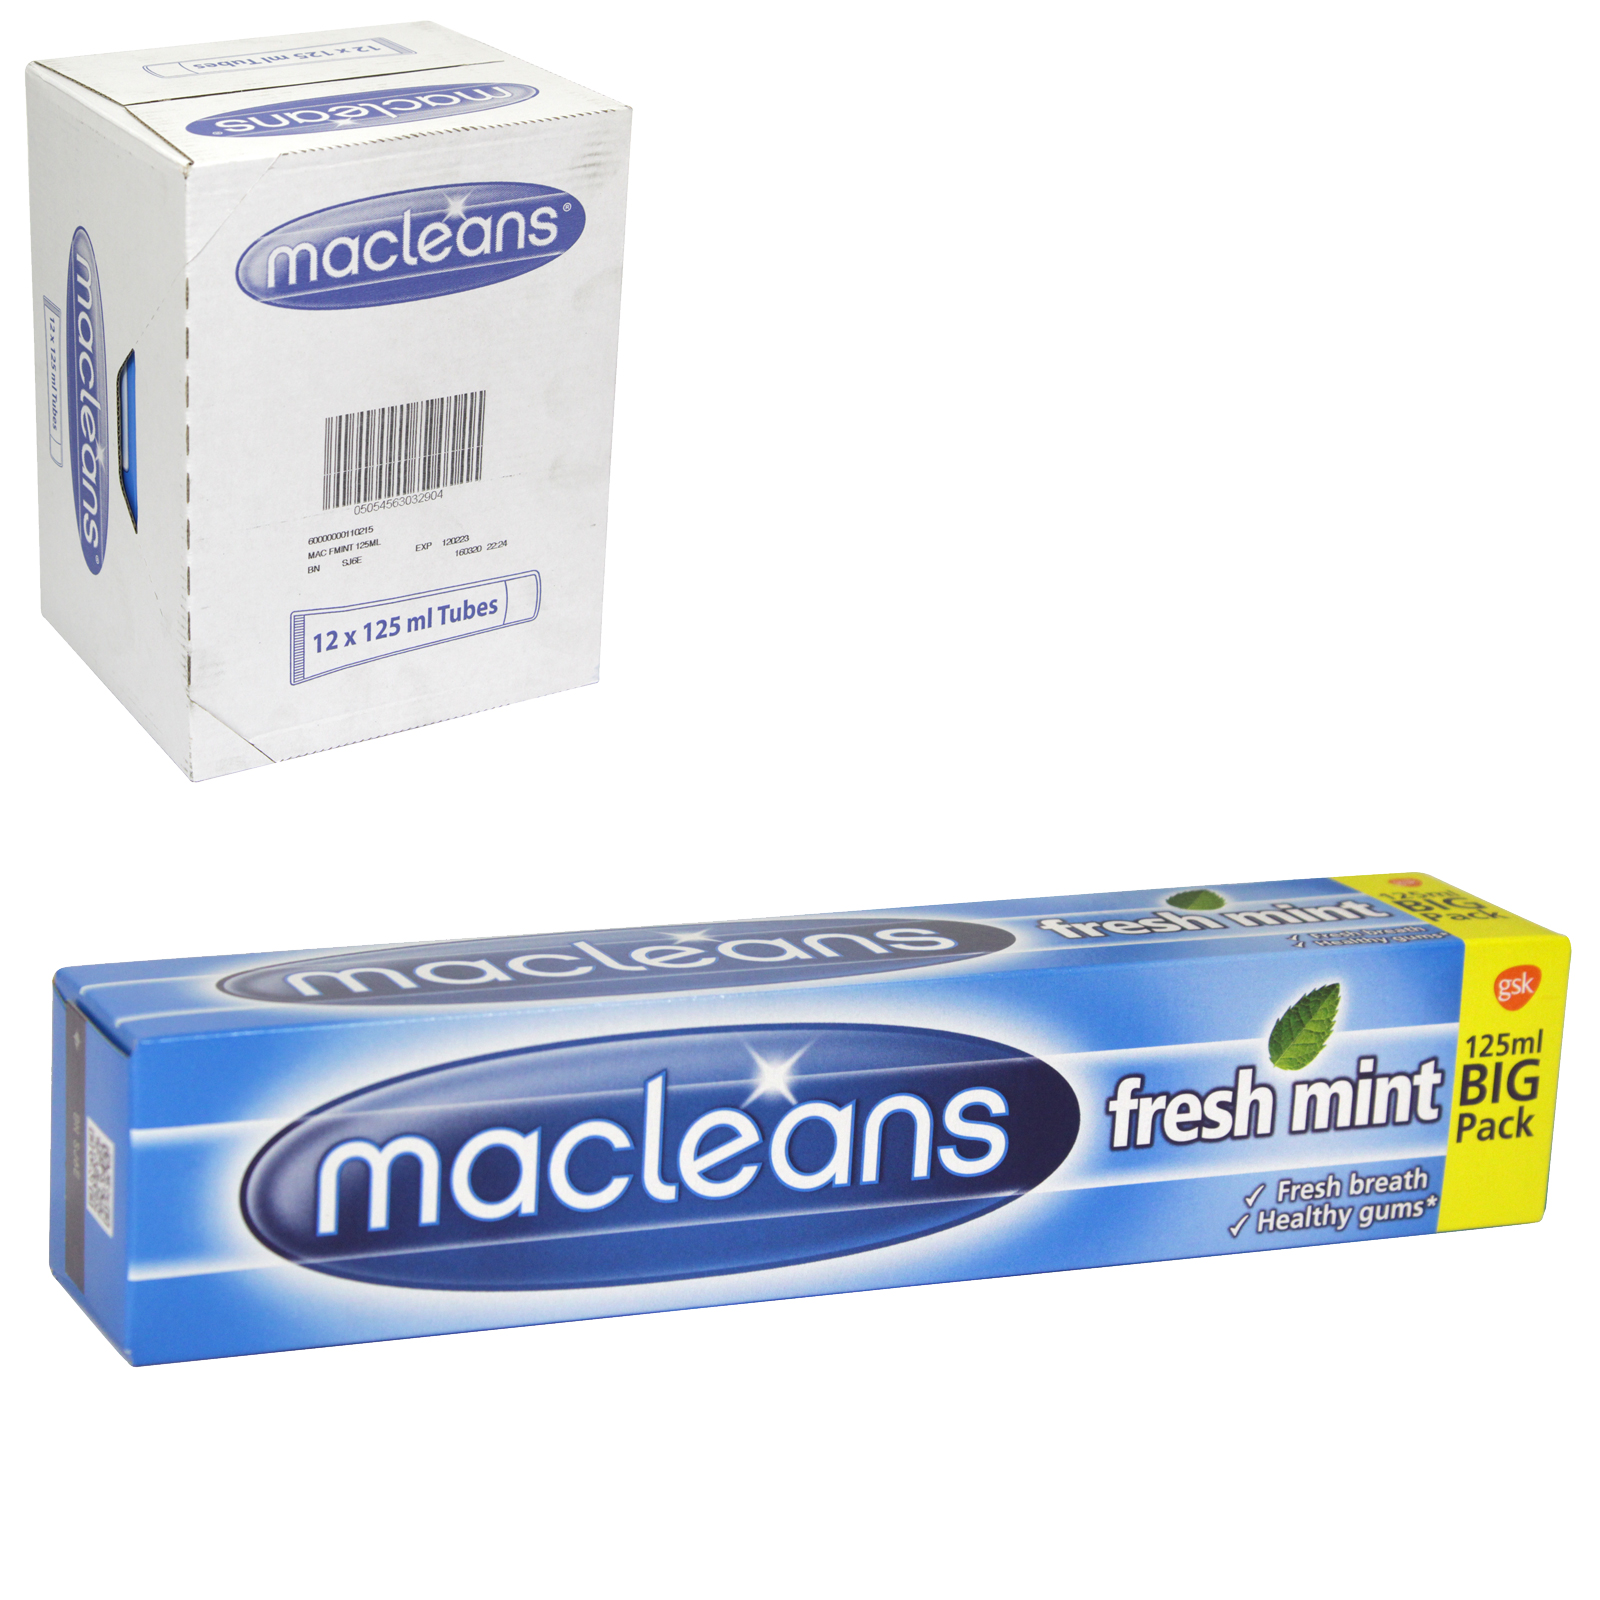 MACLEANS TOOTHPASTE 125ML TUBE FRESHMINT X12